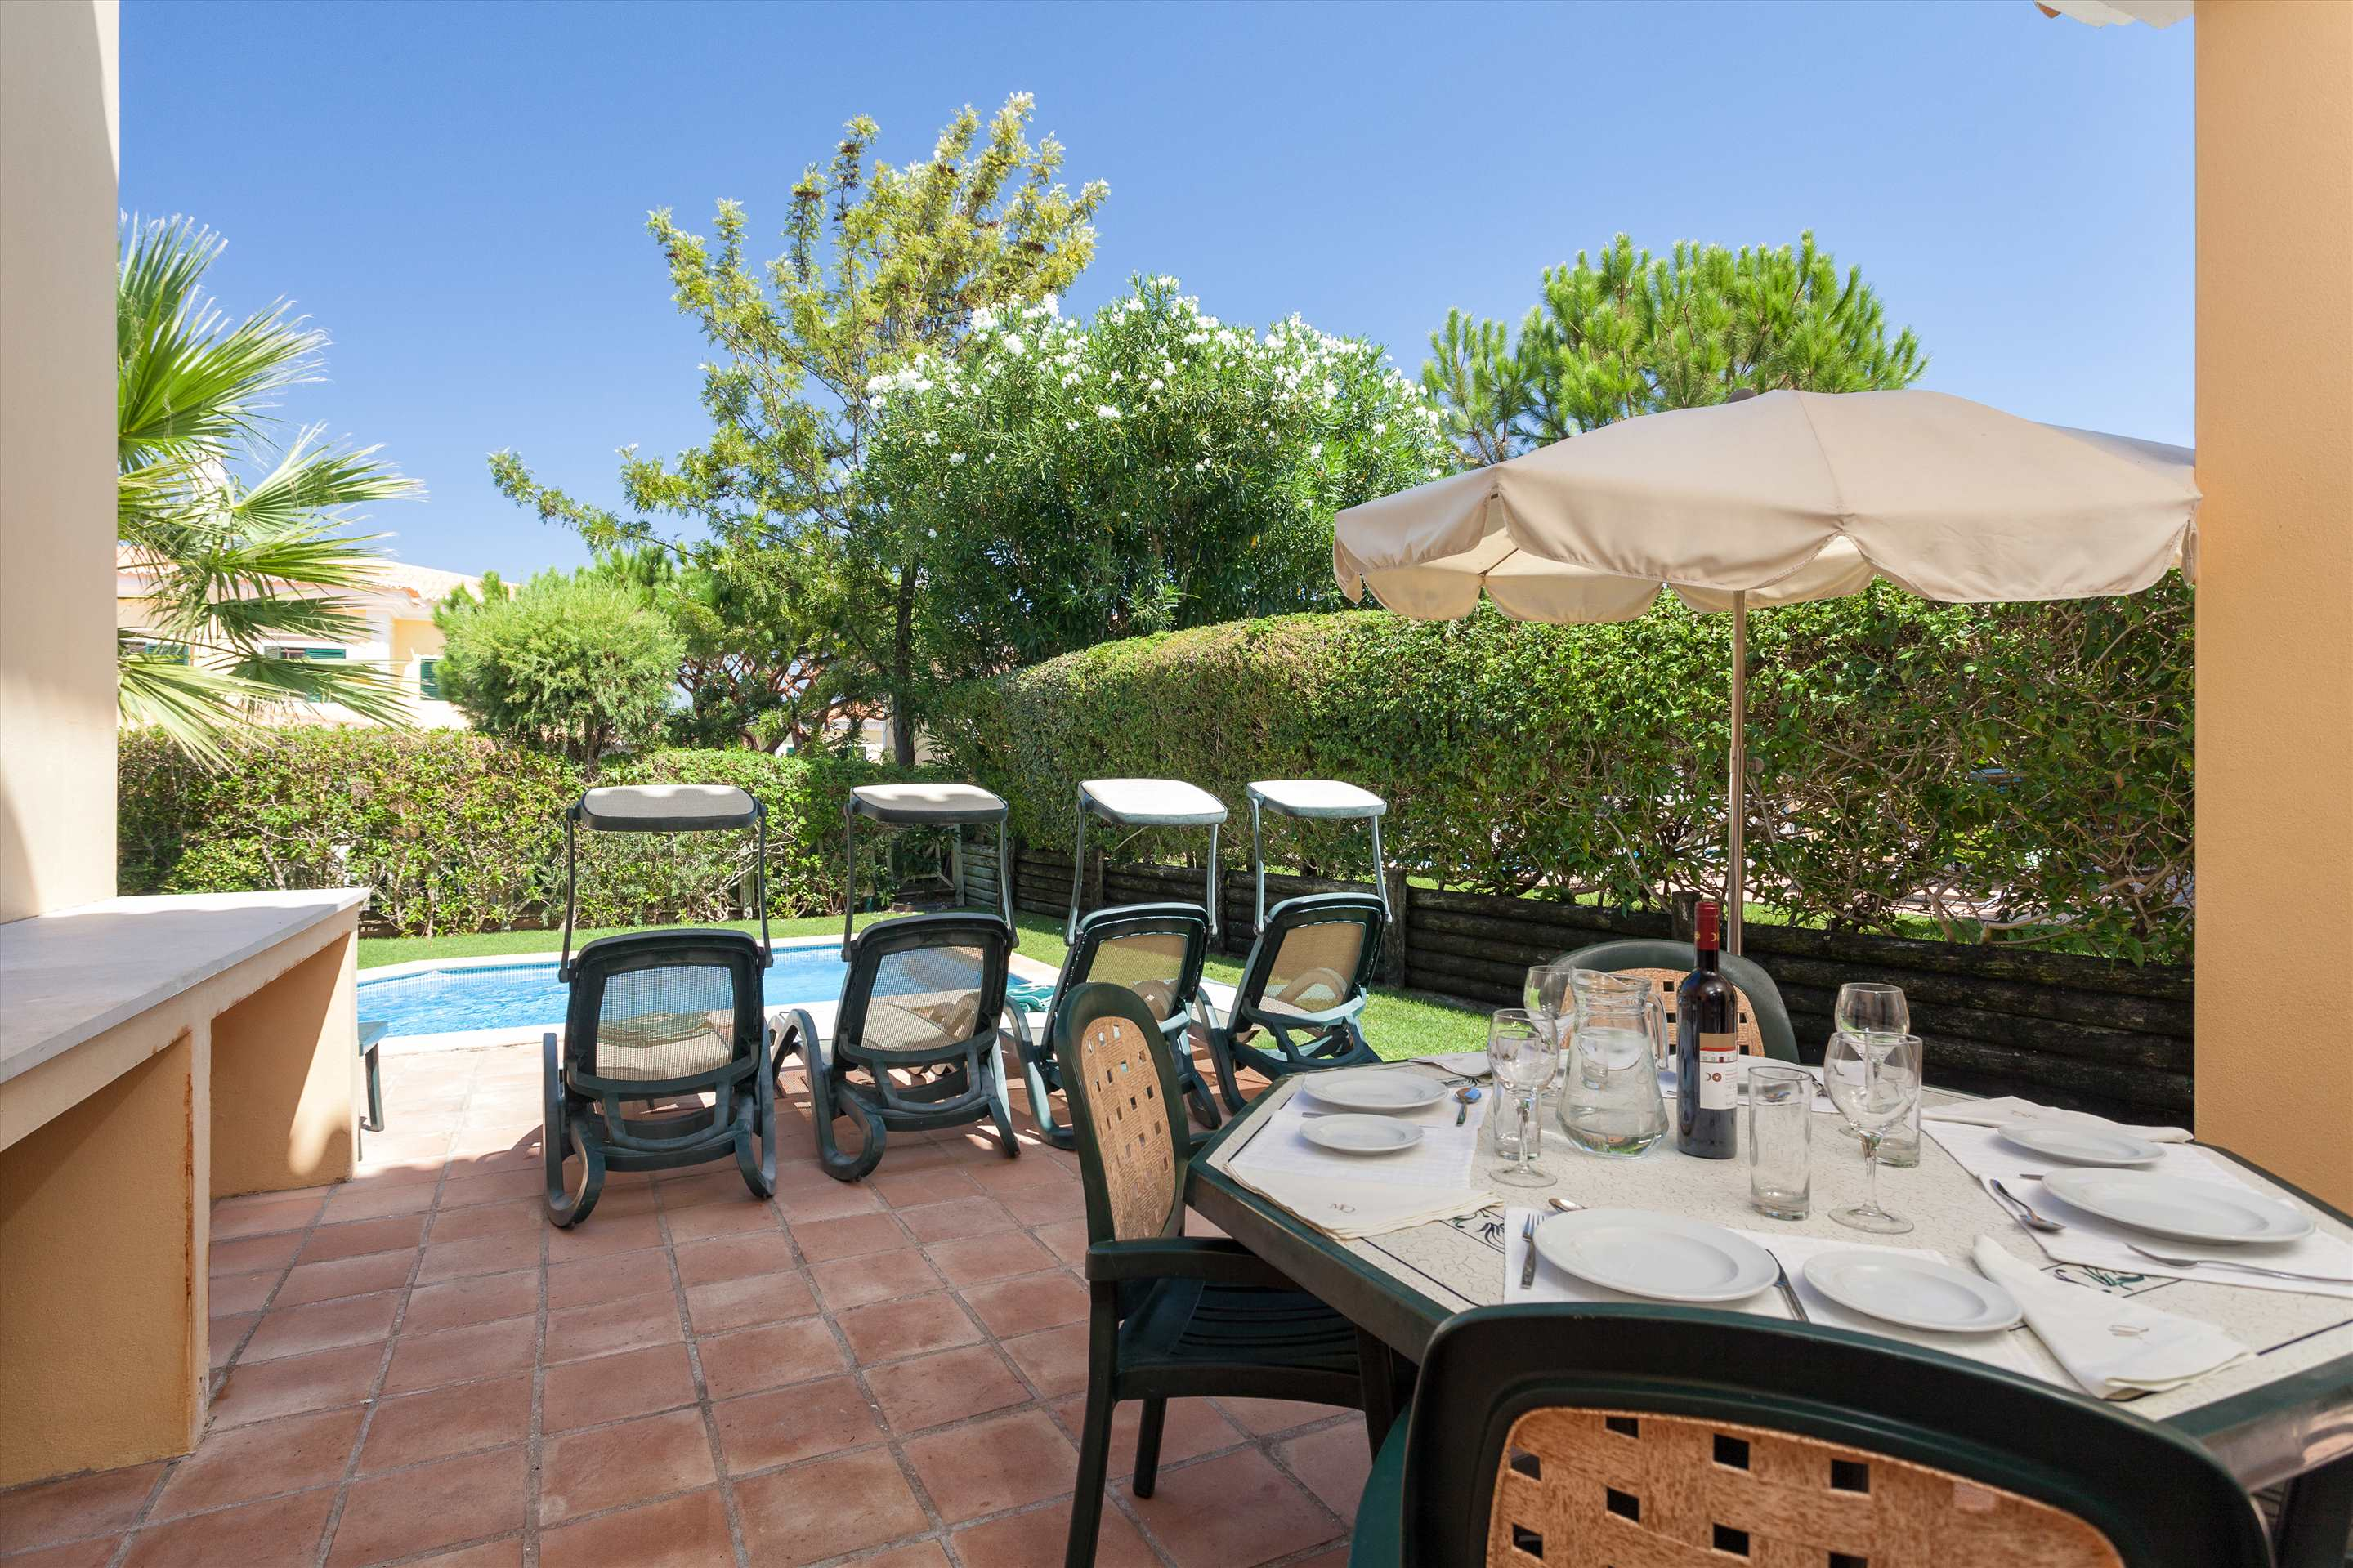 Martinhal Quinta Townhouse (3 Bedroom), 3 bedroom villa in Martinhal Quinta Resort, Algarve Photo #2